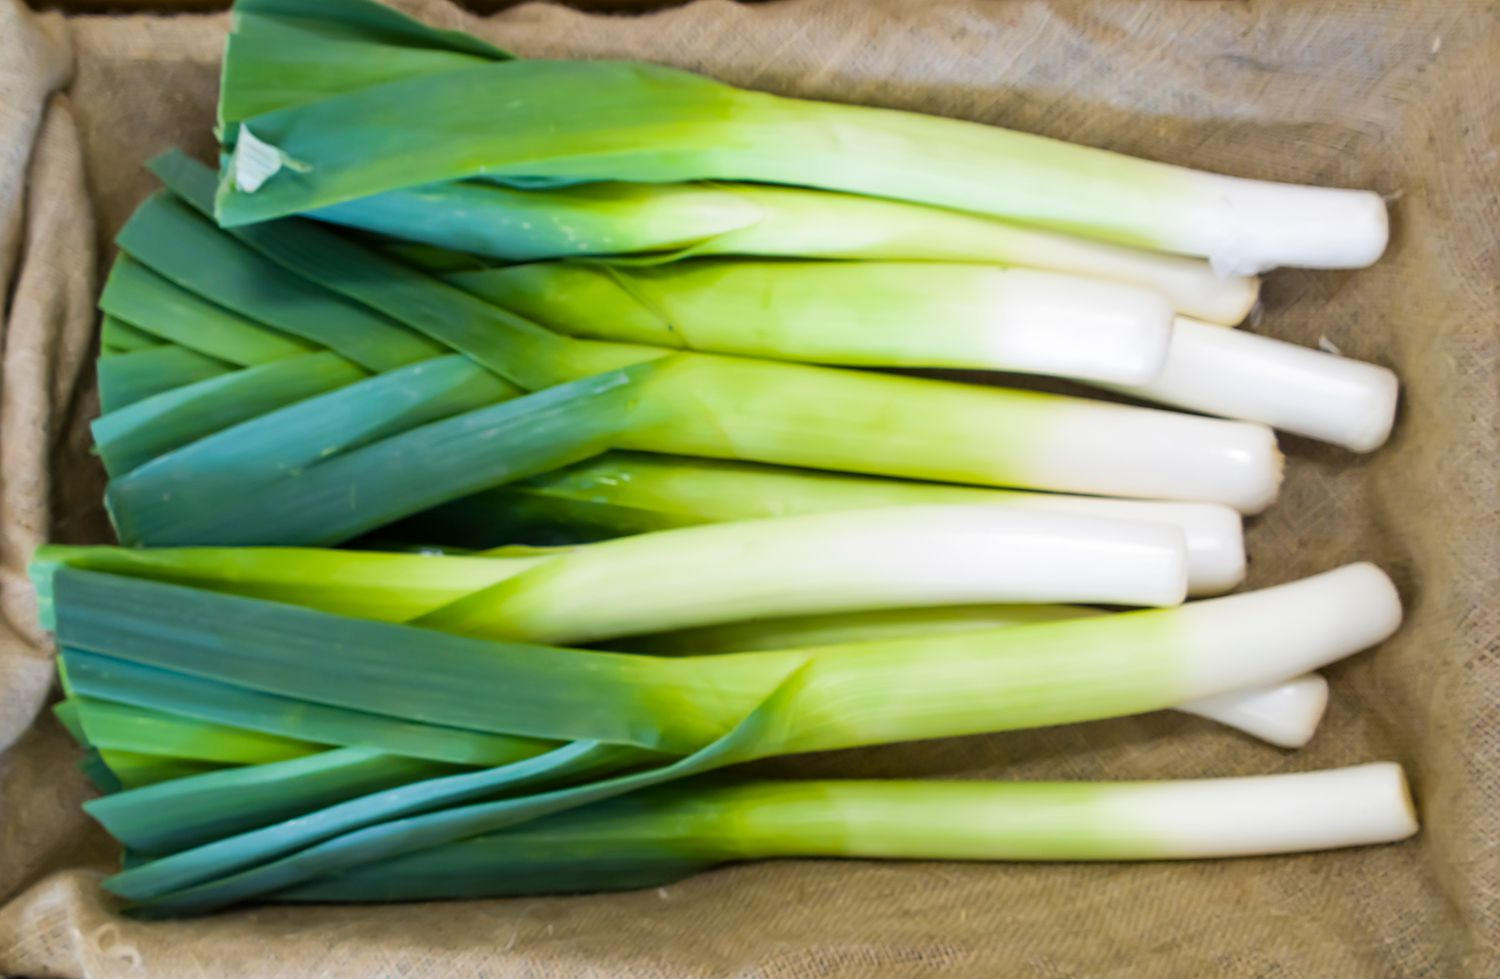 What Are Leeks and How Are They Used?